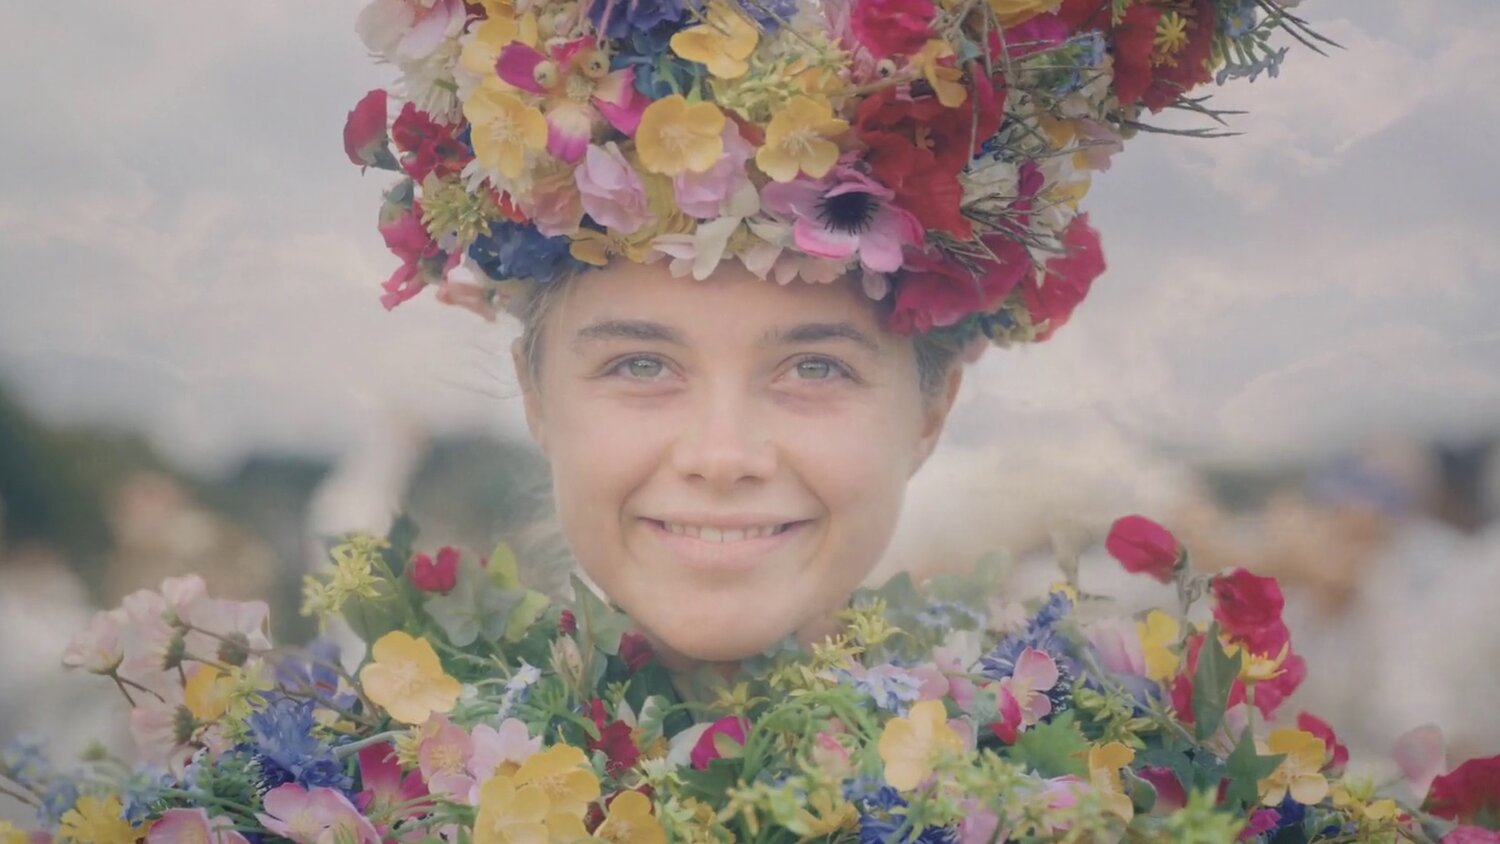 The Next Film From the Director of MIDSOMMAR Will Be a Four-Hour 'Nightmare Comedy'